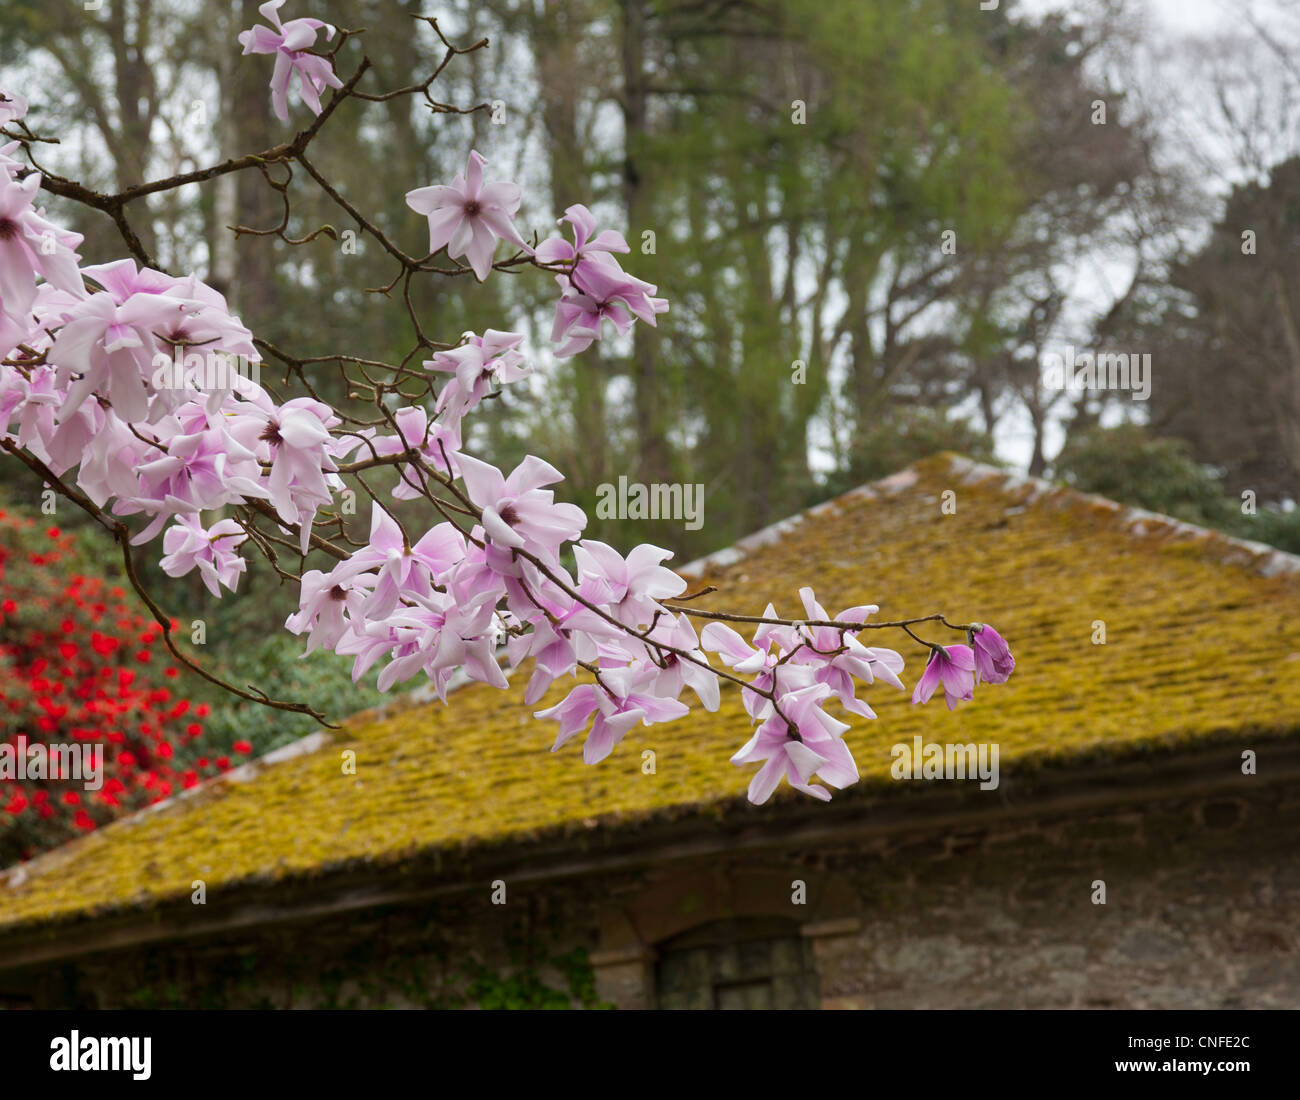 Flowers of the pink Magnolia Stellata shrub in front of old moss covered tile roof - Stock Image